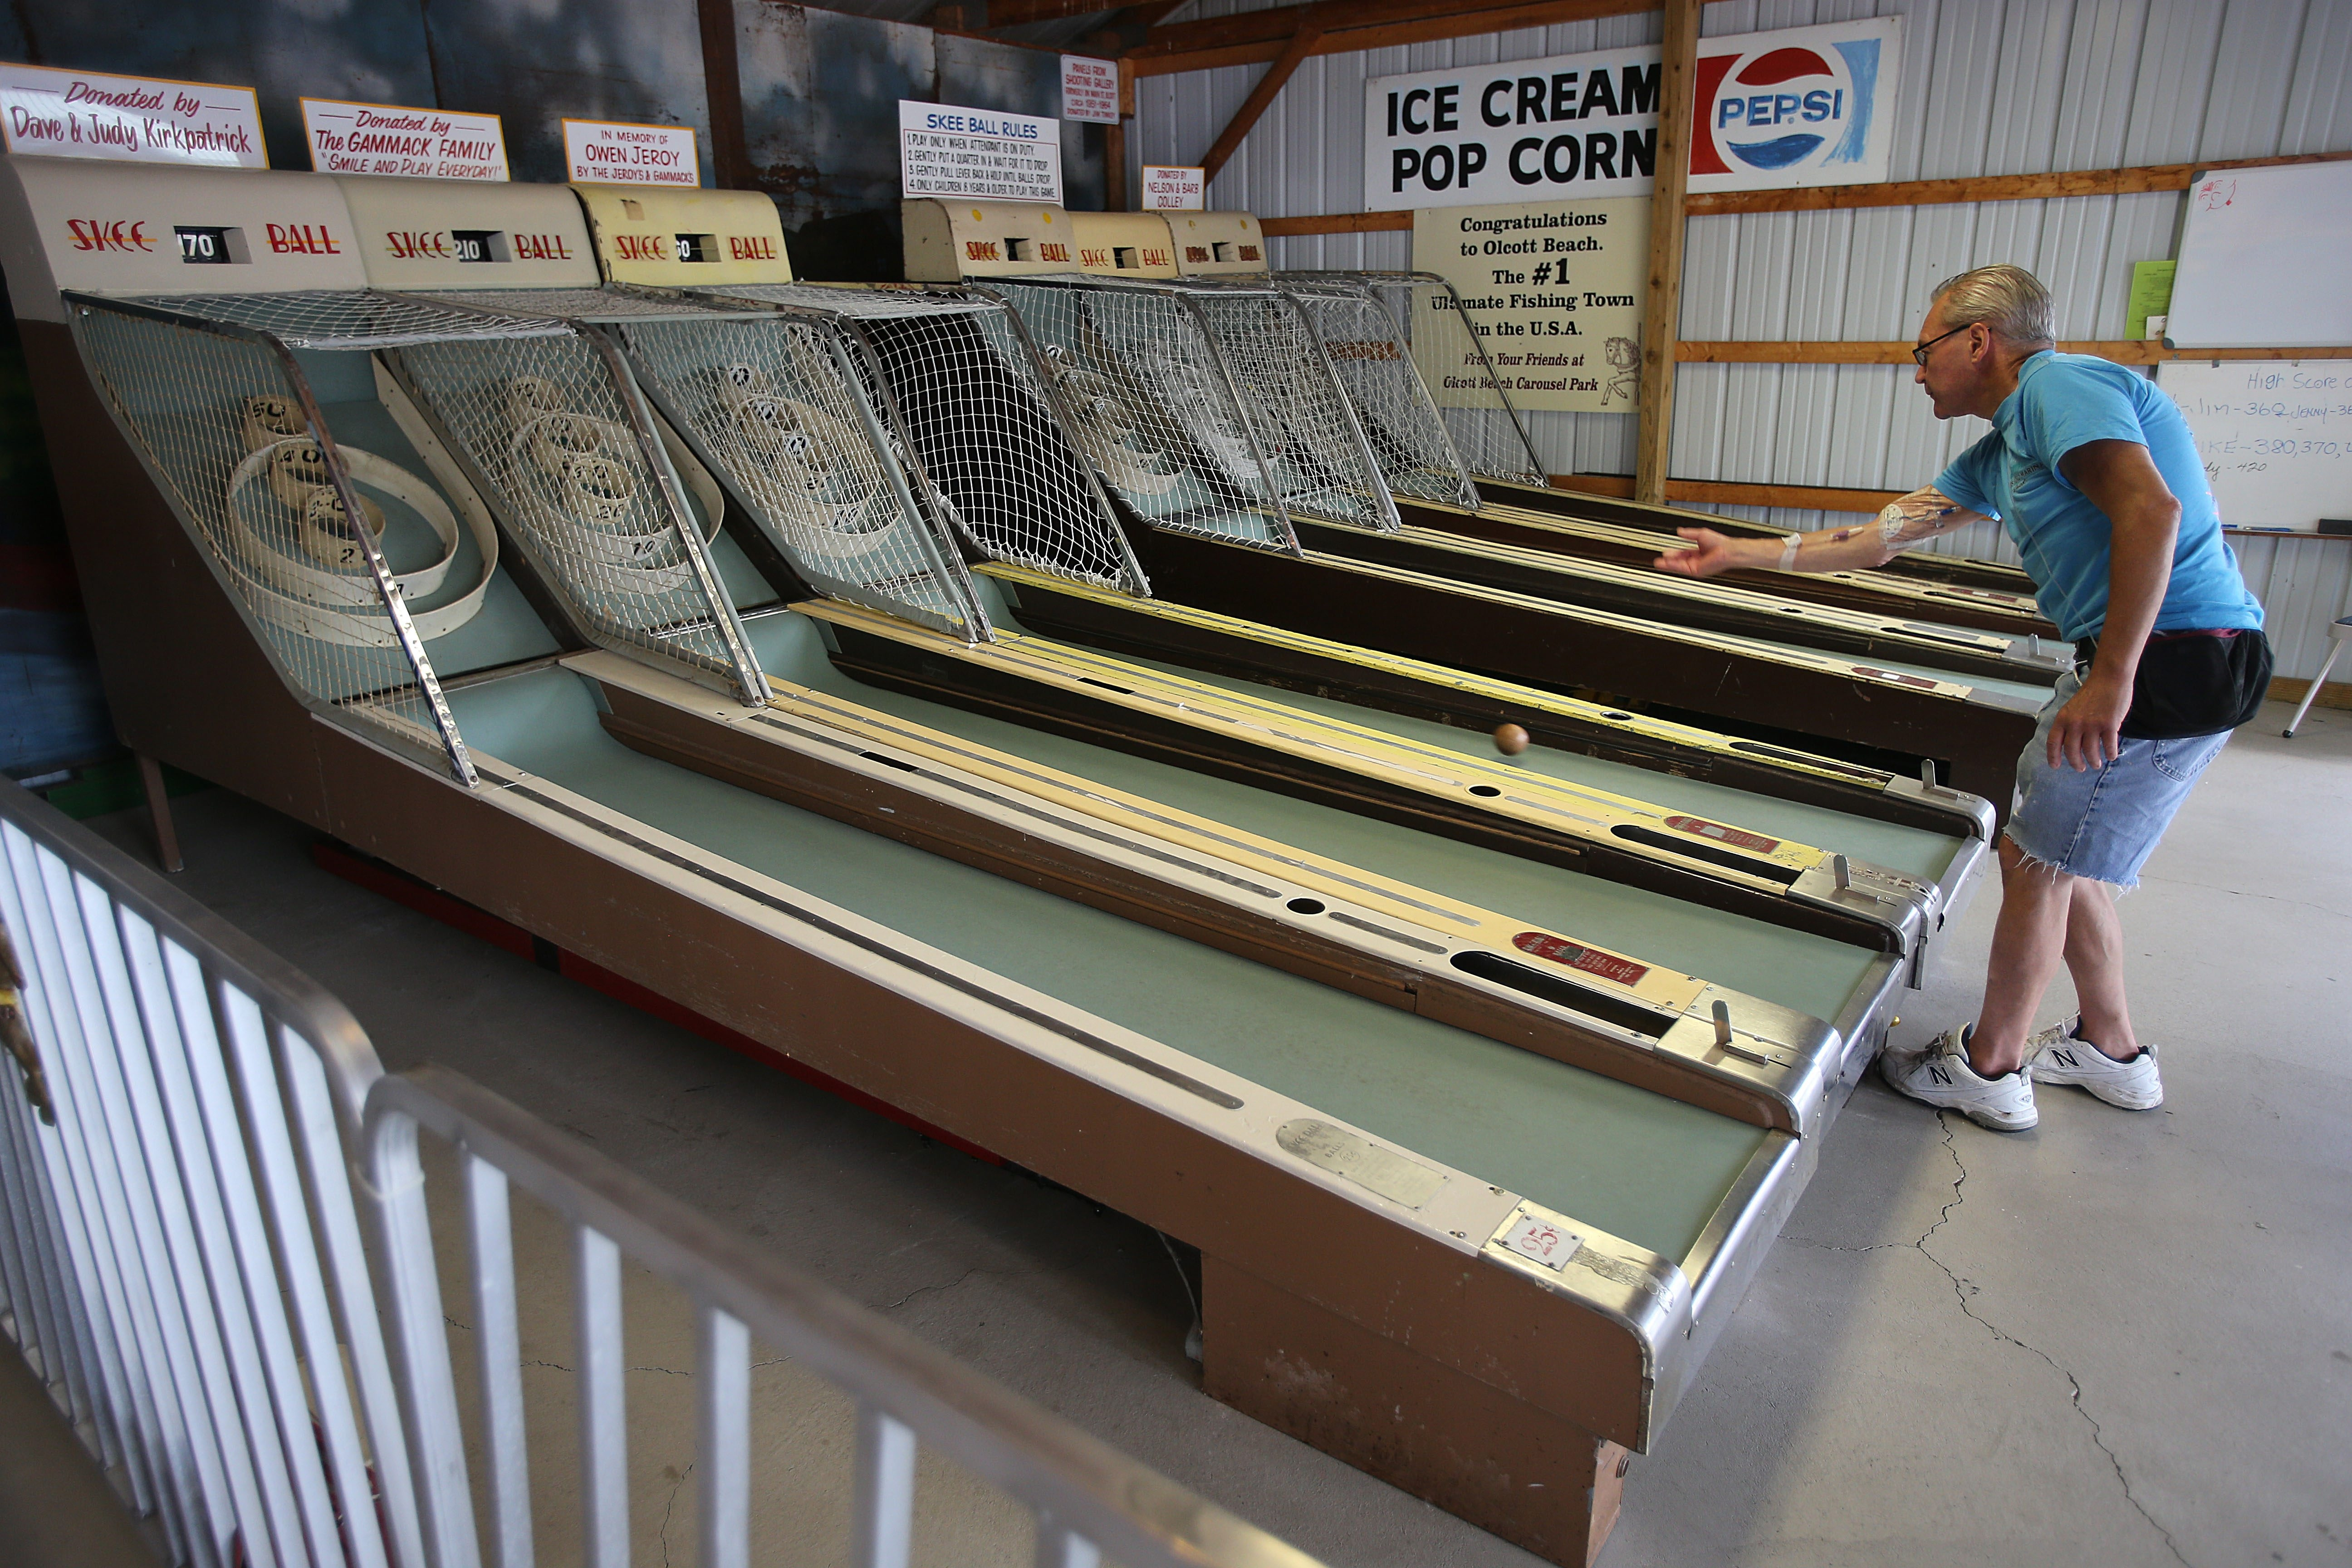 Matt Wronski, of Middleport, plays Skee Ball at the Olcott Carousel Park,  one of the venues that will be part of Old Olcott Days.